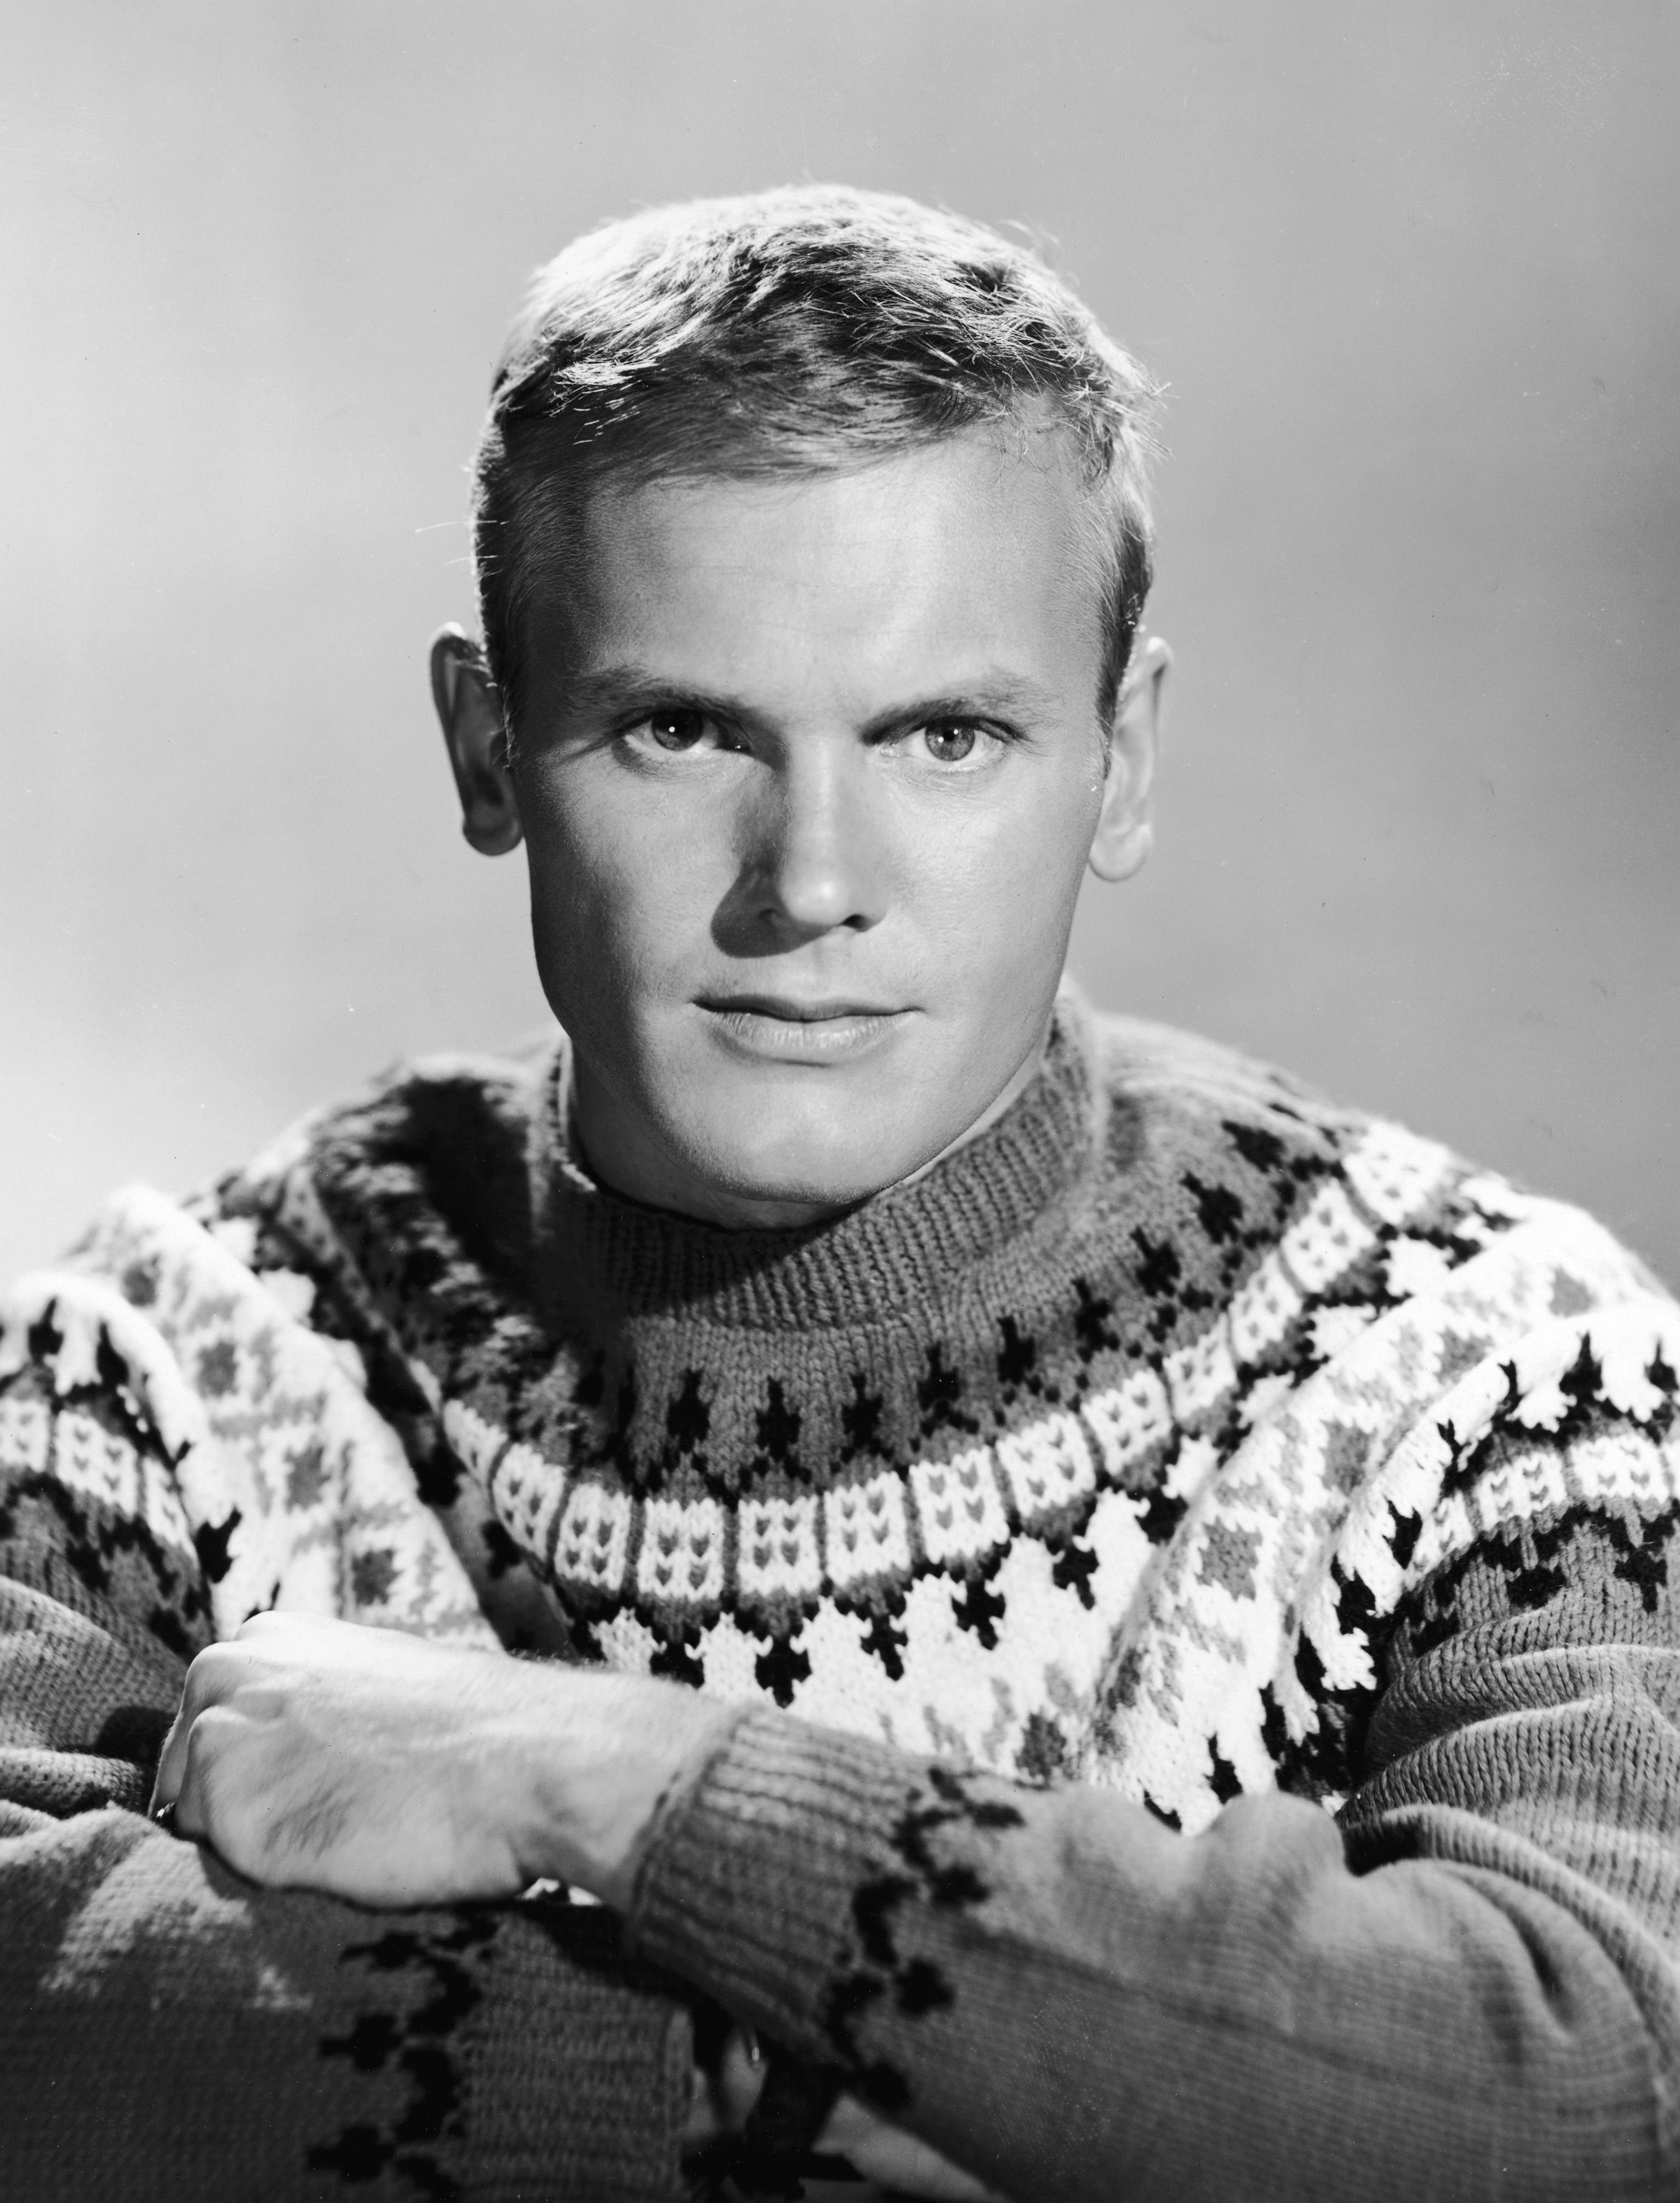 """Tab Hunter wearing a ski sweater in a promotional portrait for """"The Tab Hunter Show"""" in 1960.   Photo: Getty Images"""